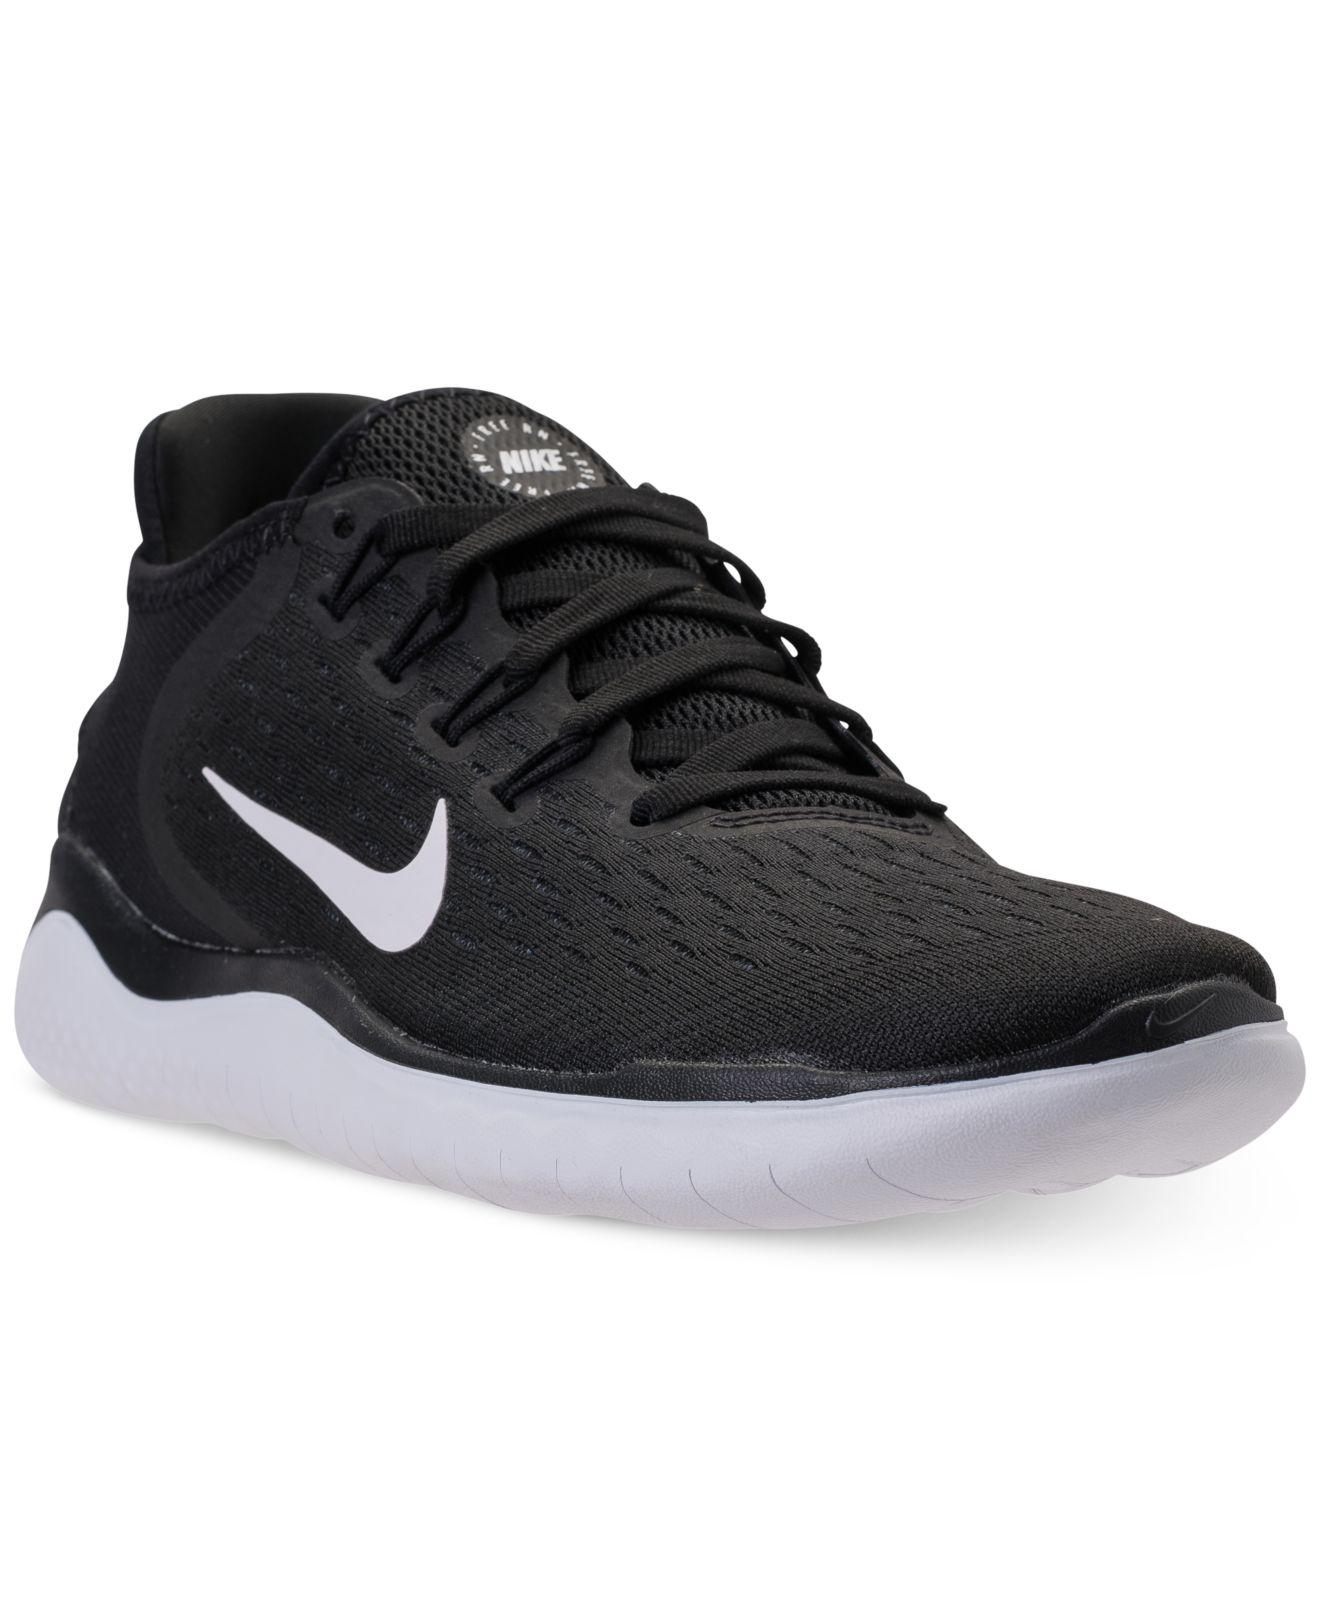 Lyst - Nike Free Run 2018 Running Sneakers From Finish Line in Black 4114e5437